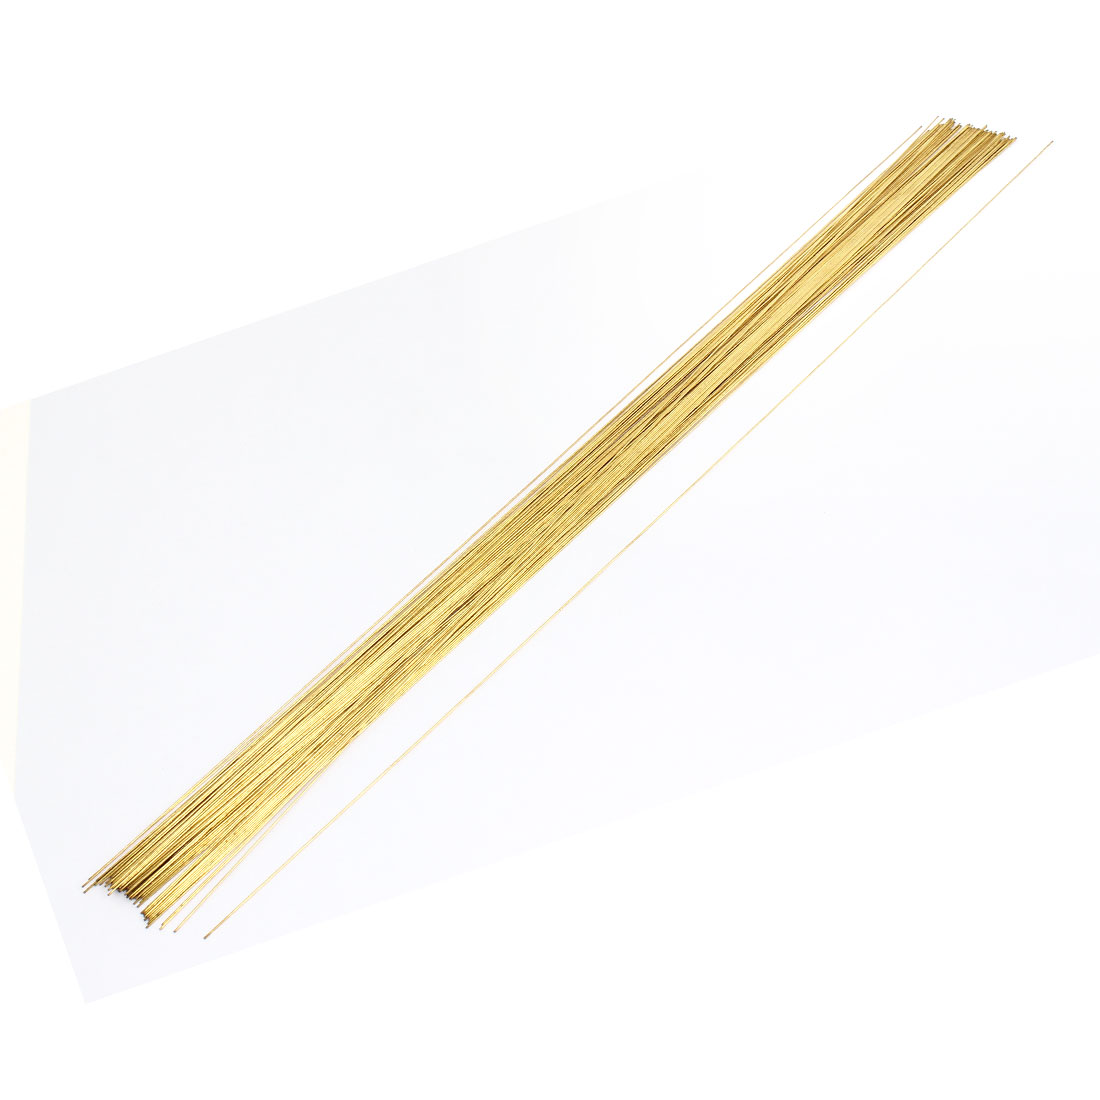 100pcs 0.6x400mm Brass Electrode EDM Tube Pipe for Electrical Discharge Machine